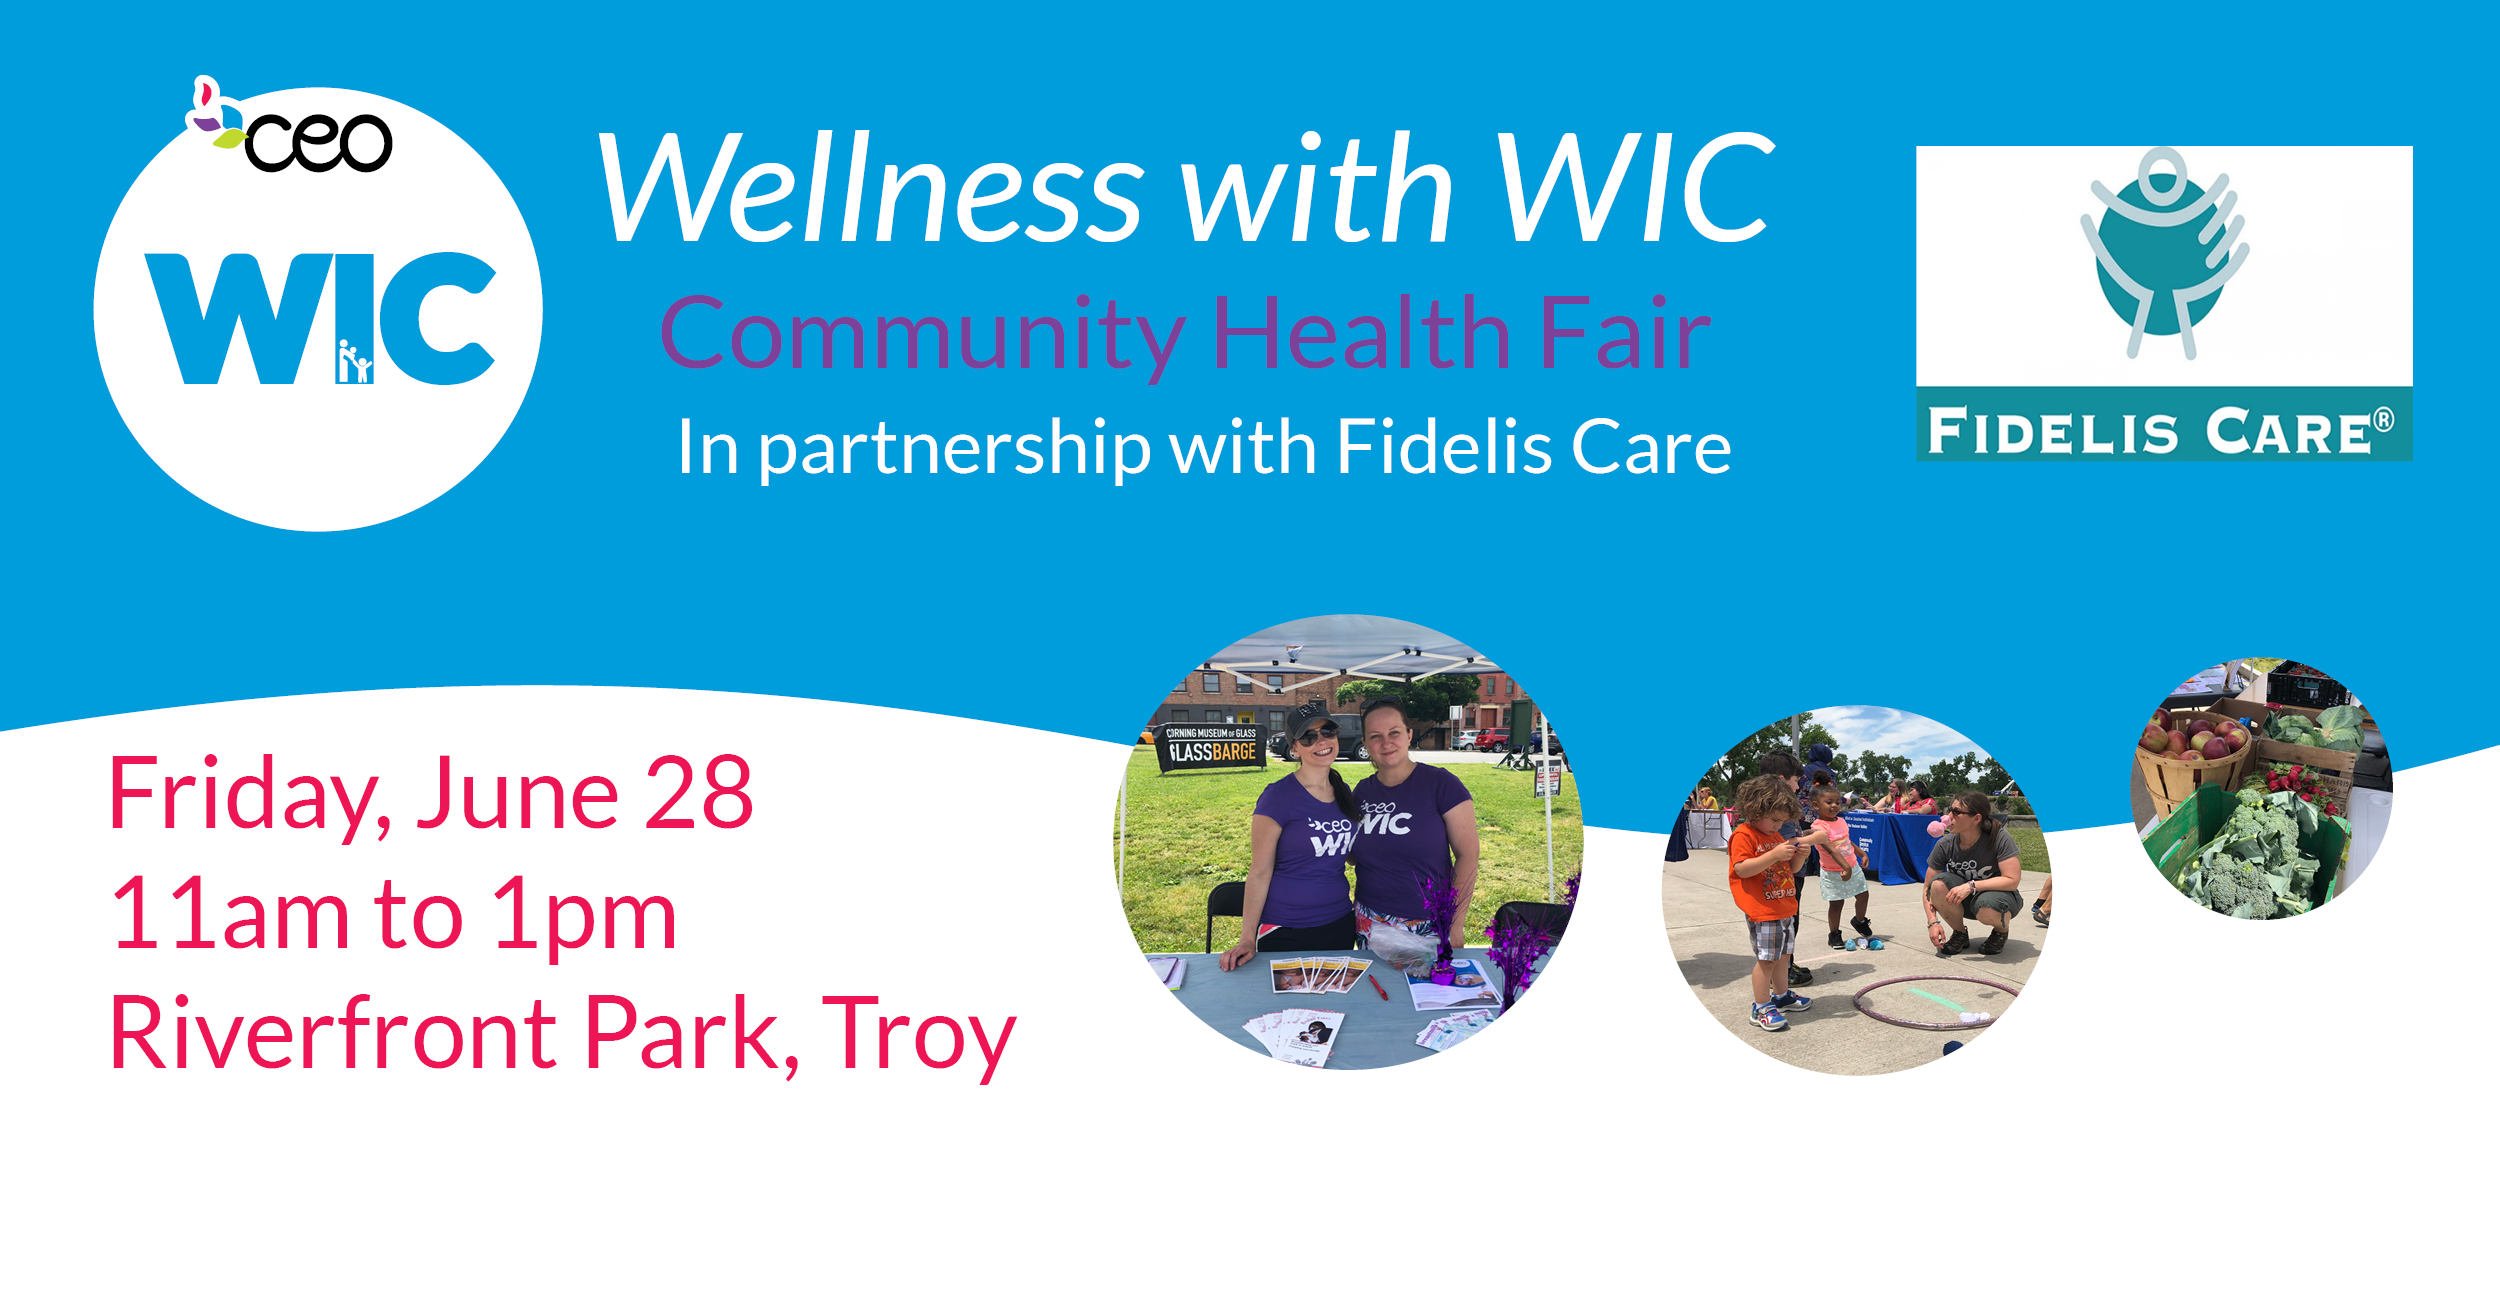 Wellness with WIC